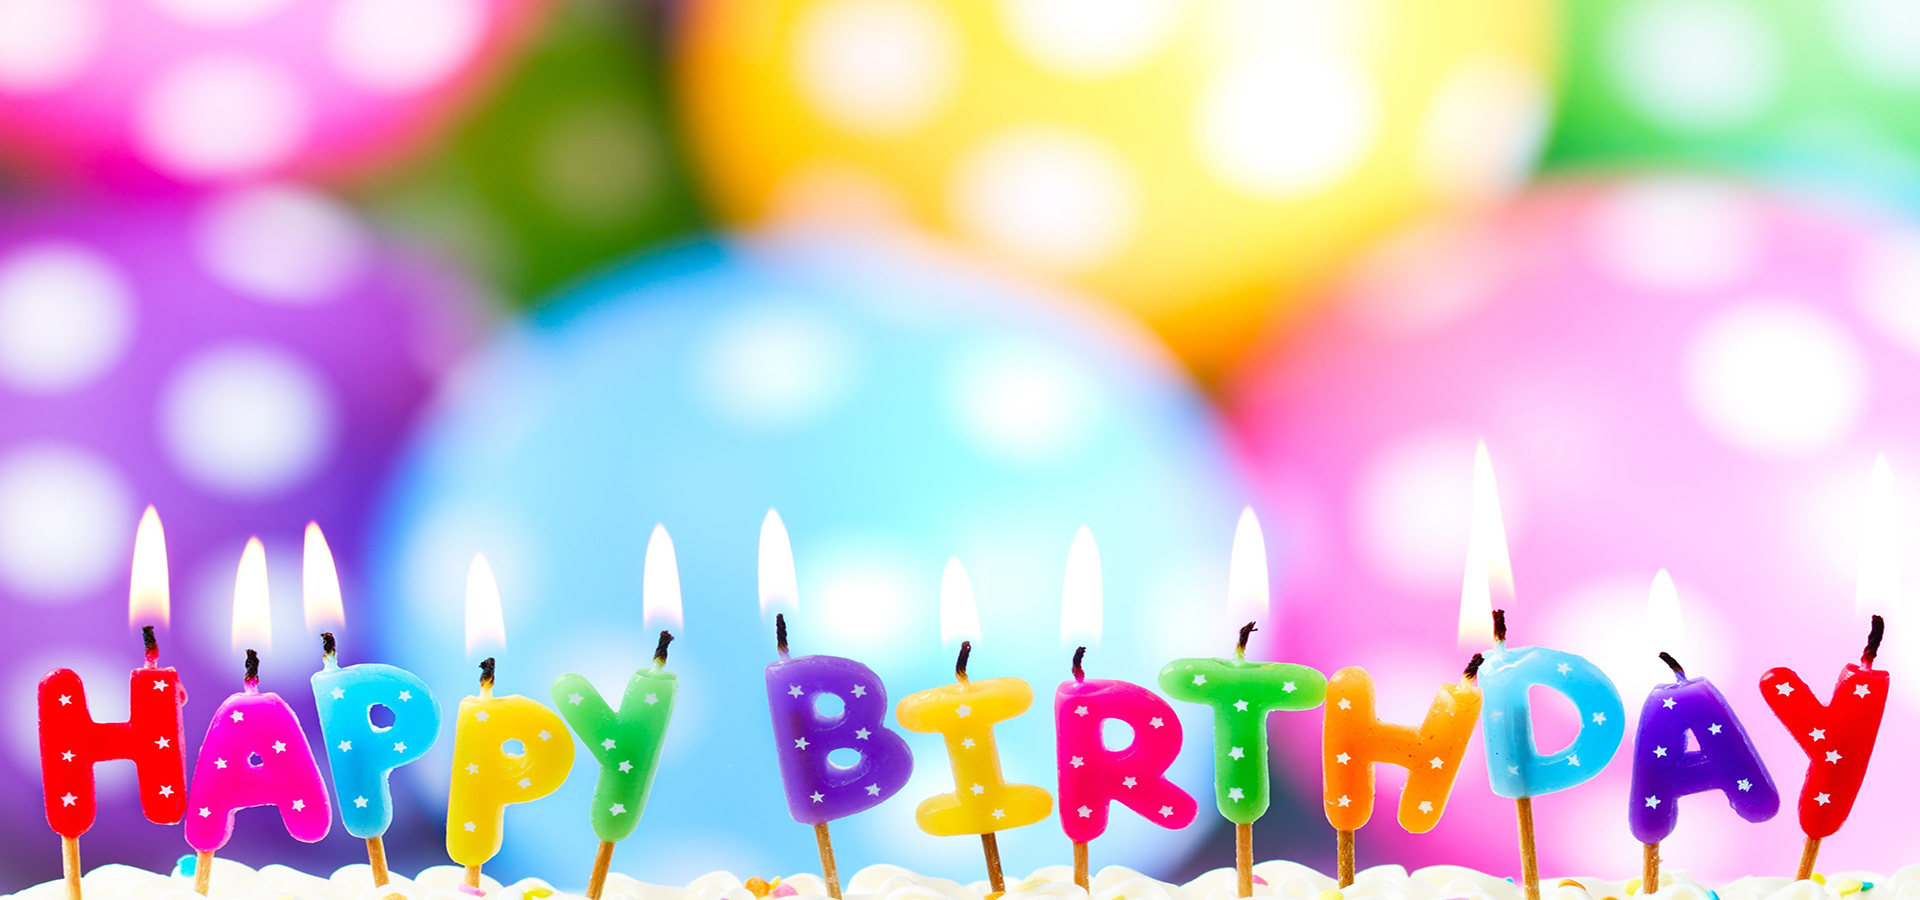 Colorful Birthday Background Colorful Birthday Candle Background